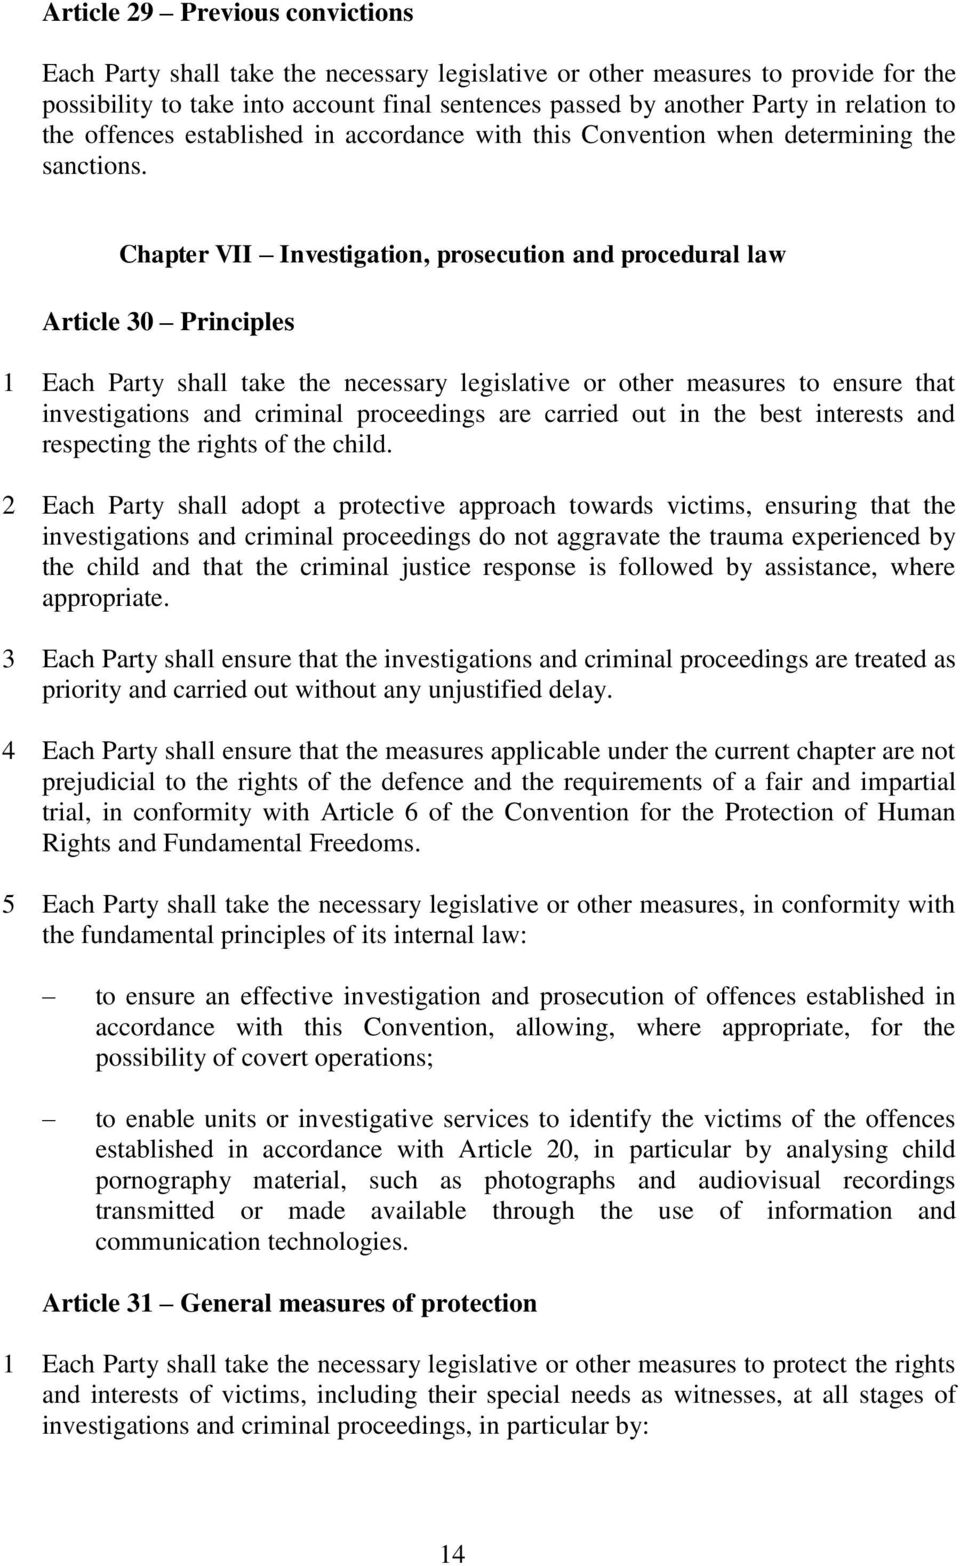 Chapter VII Investigation, prosecution and procedural law Article 30 Principles 1 Each Party shall take the necessary legislative or other measures to ensure that investigations and criminal